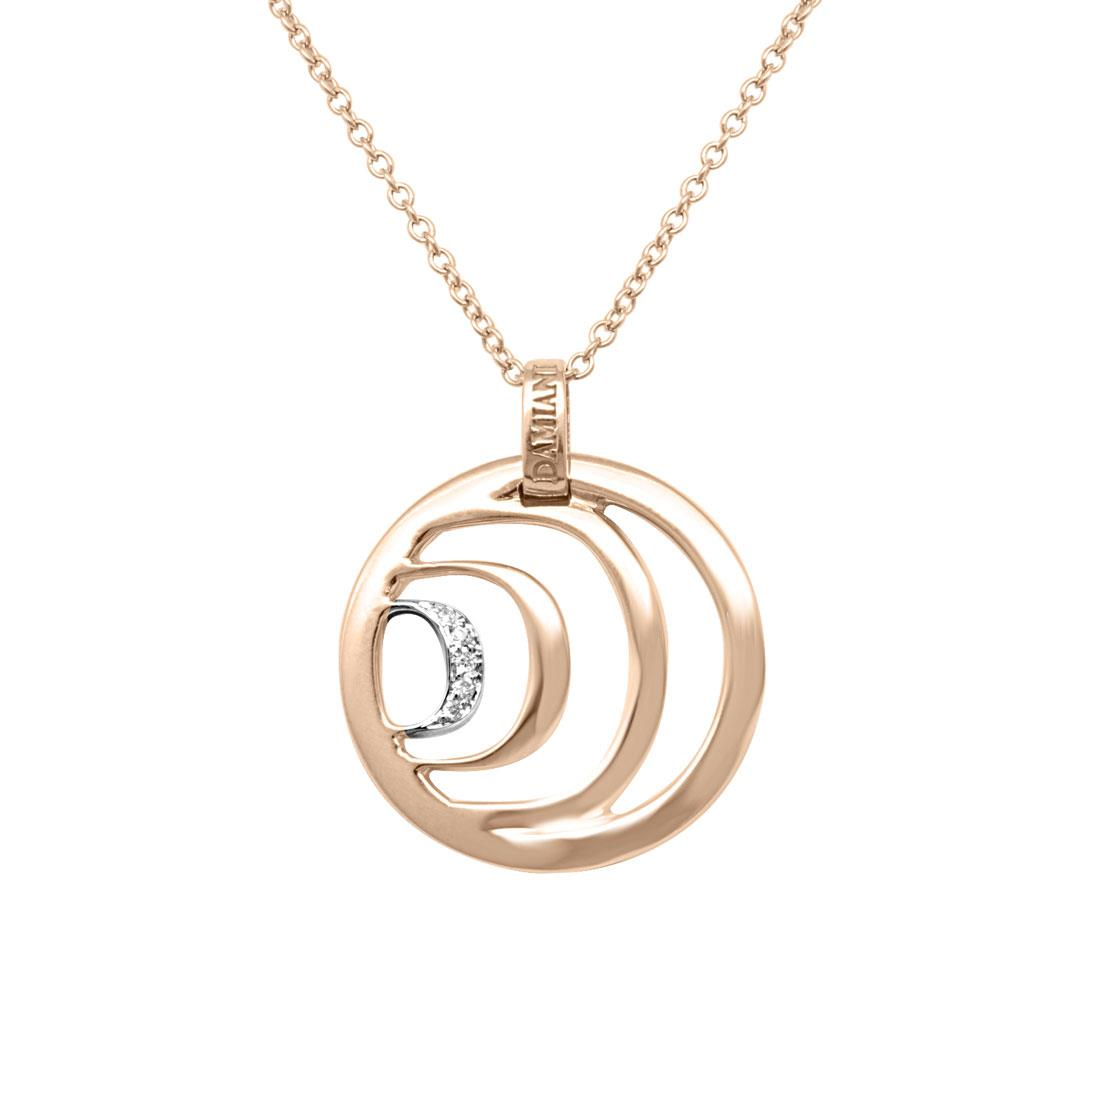 Collana in oro rosa con diamanti ct 0.025 - DAMIANI